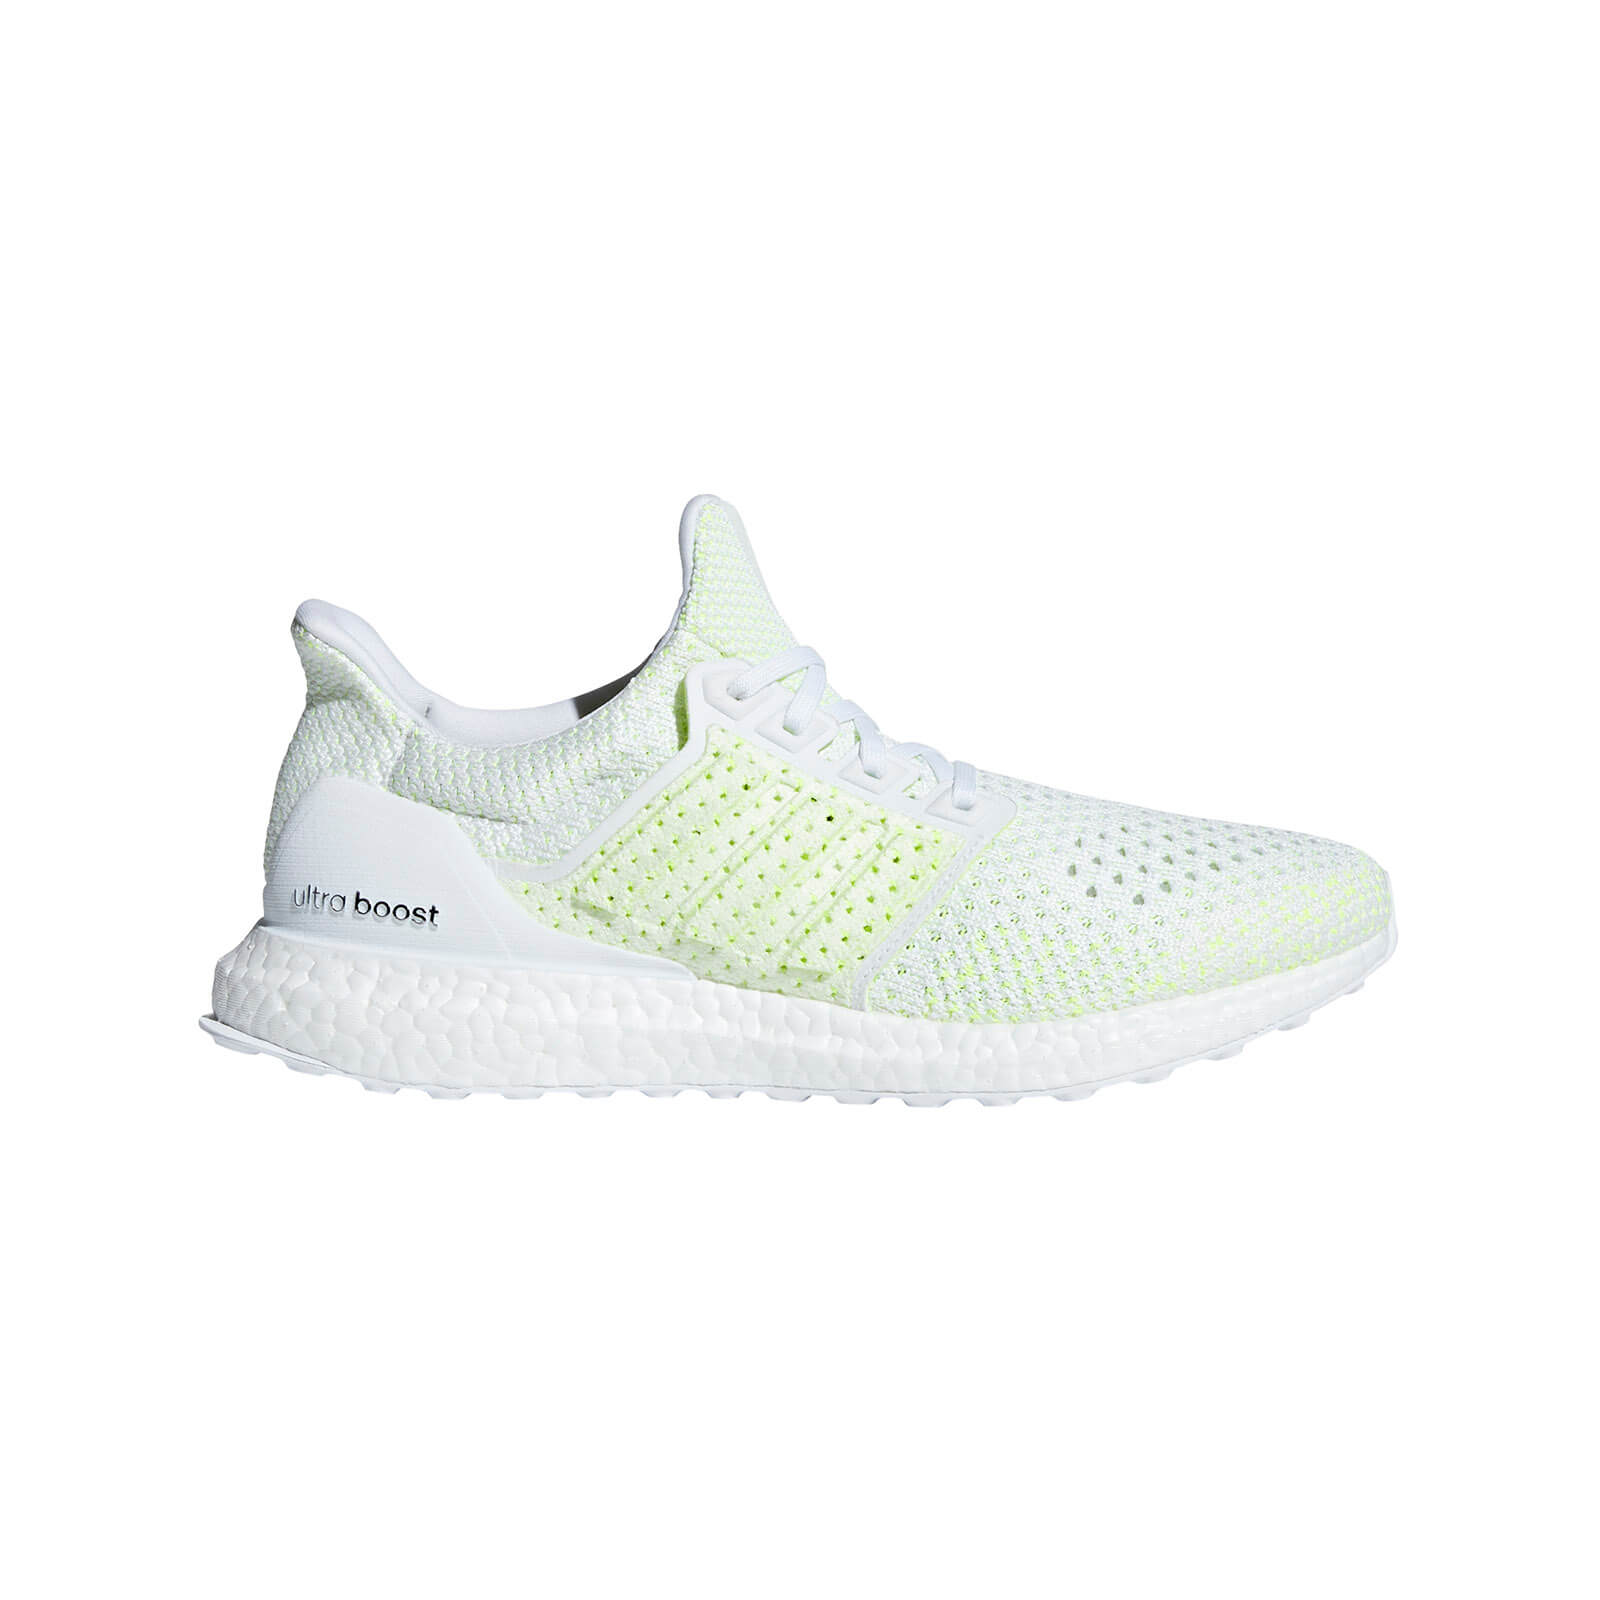 c0d477230988d adidas Men s Ultraboost Clima Running Shoes - White Green ...